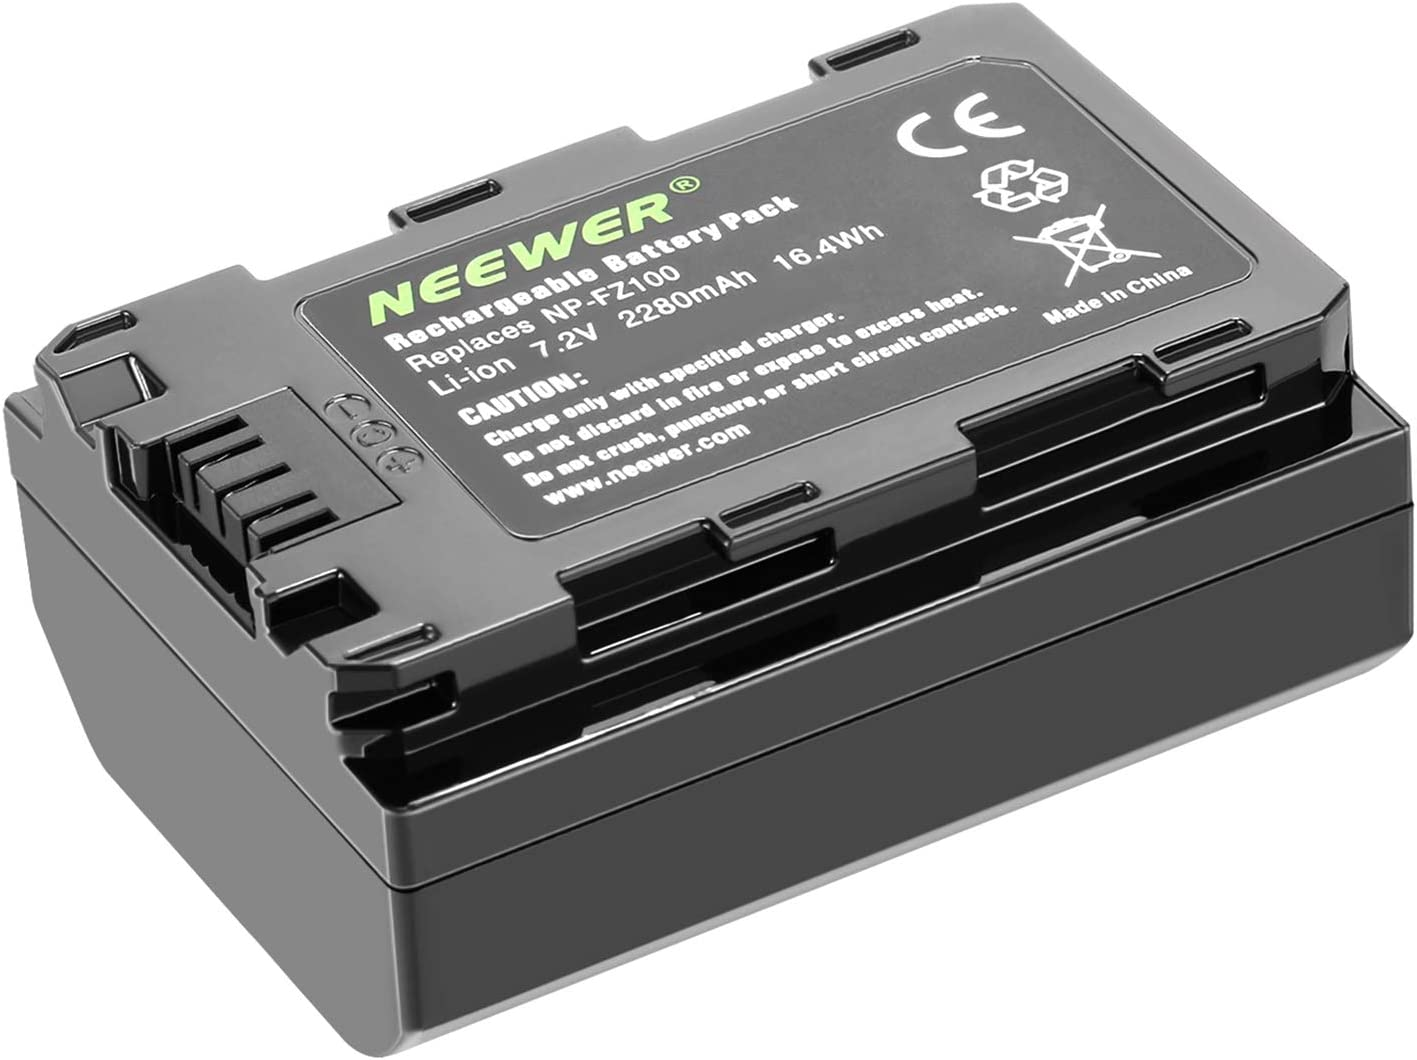 Neewer Battery Pack Replacement for Sony NP-FZ100, Compatible with Sony A9 A7III A7RIII Cameras and VG-C3EM Grip, 7.2v 2280mAh 16.4Wh Rechargeable Li-ion Battery (Only Battery)